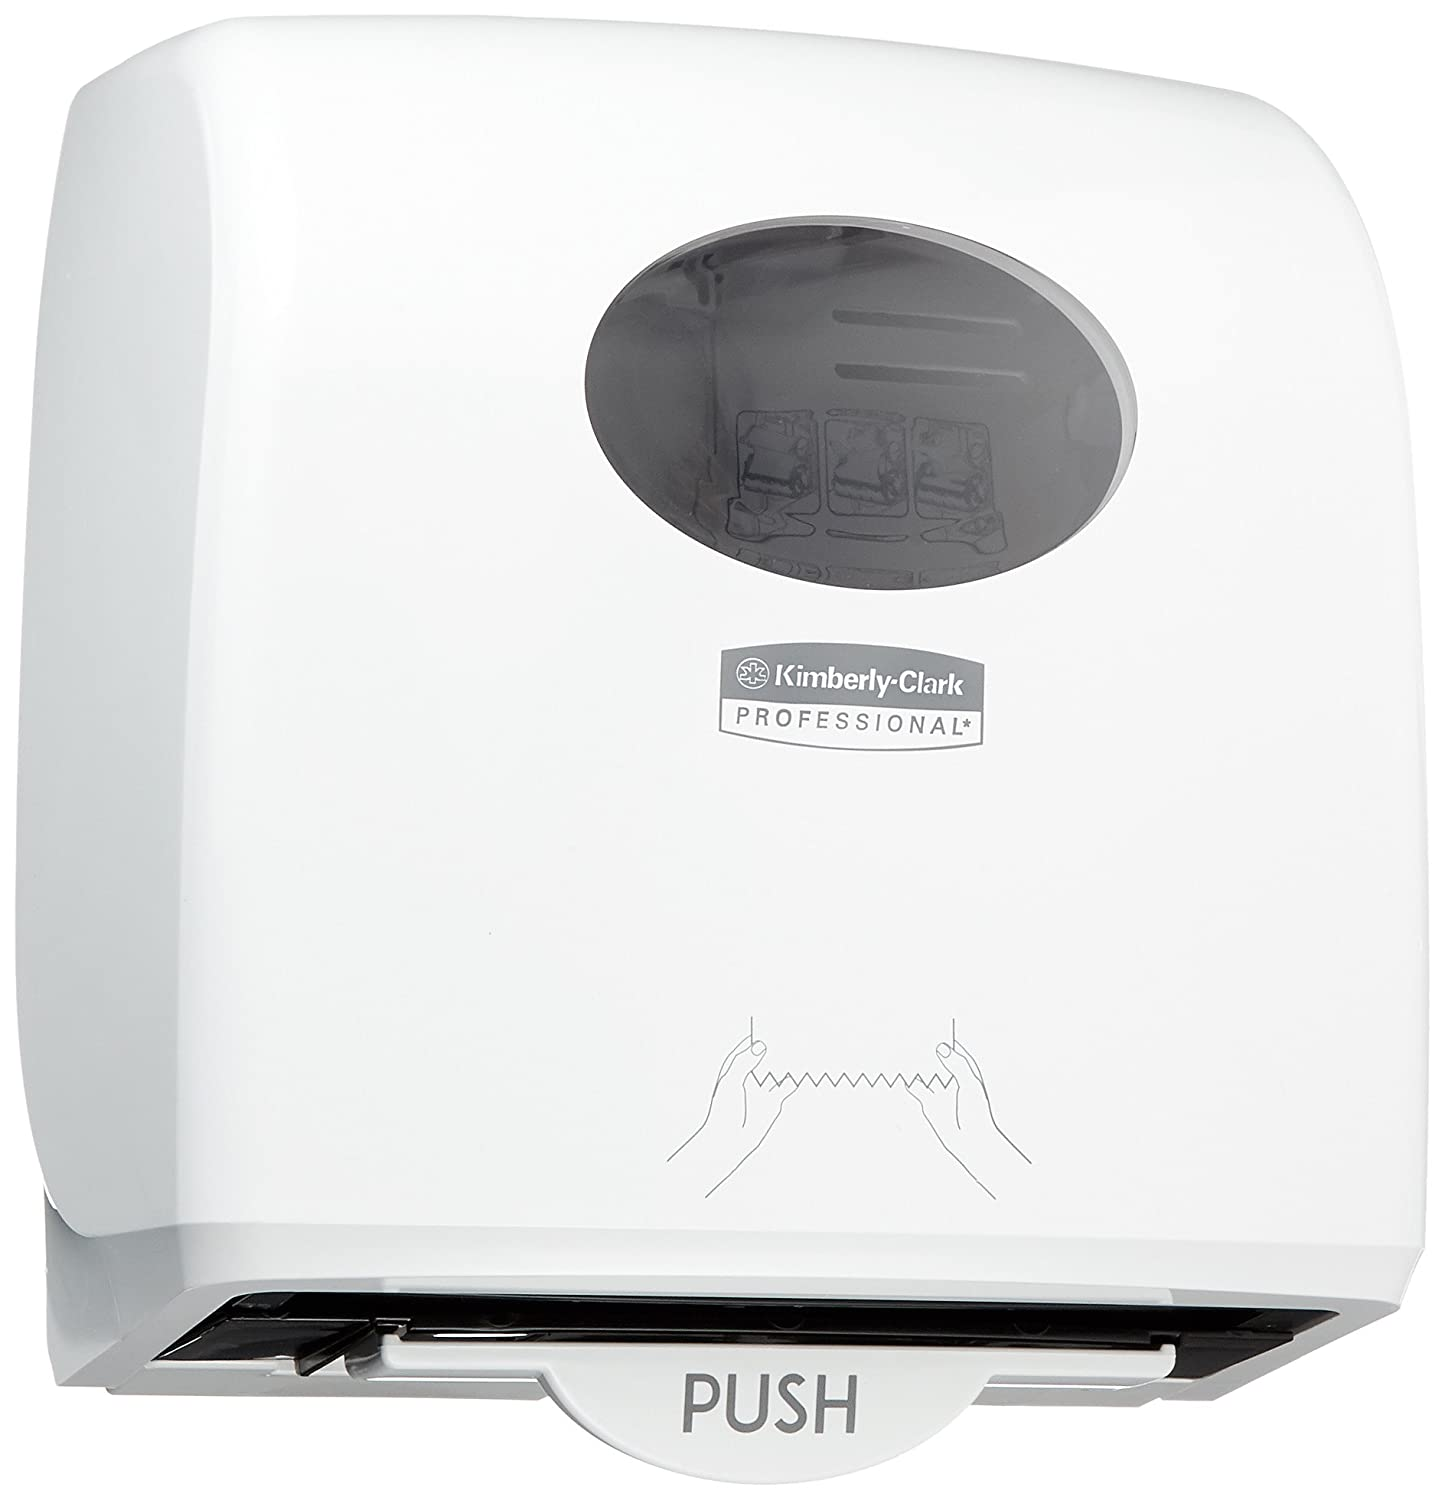 AQUARIUS* SLIMROLL* Dispensador de Toallas Secamanos en Rollo 7955 - Blanco: Amazon.es: Industria, empresas y ciencia